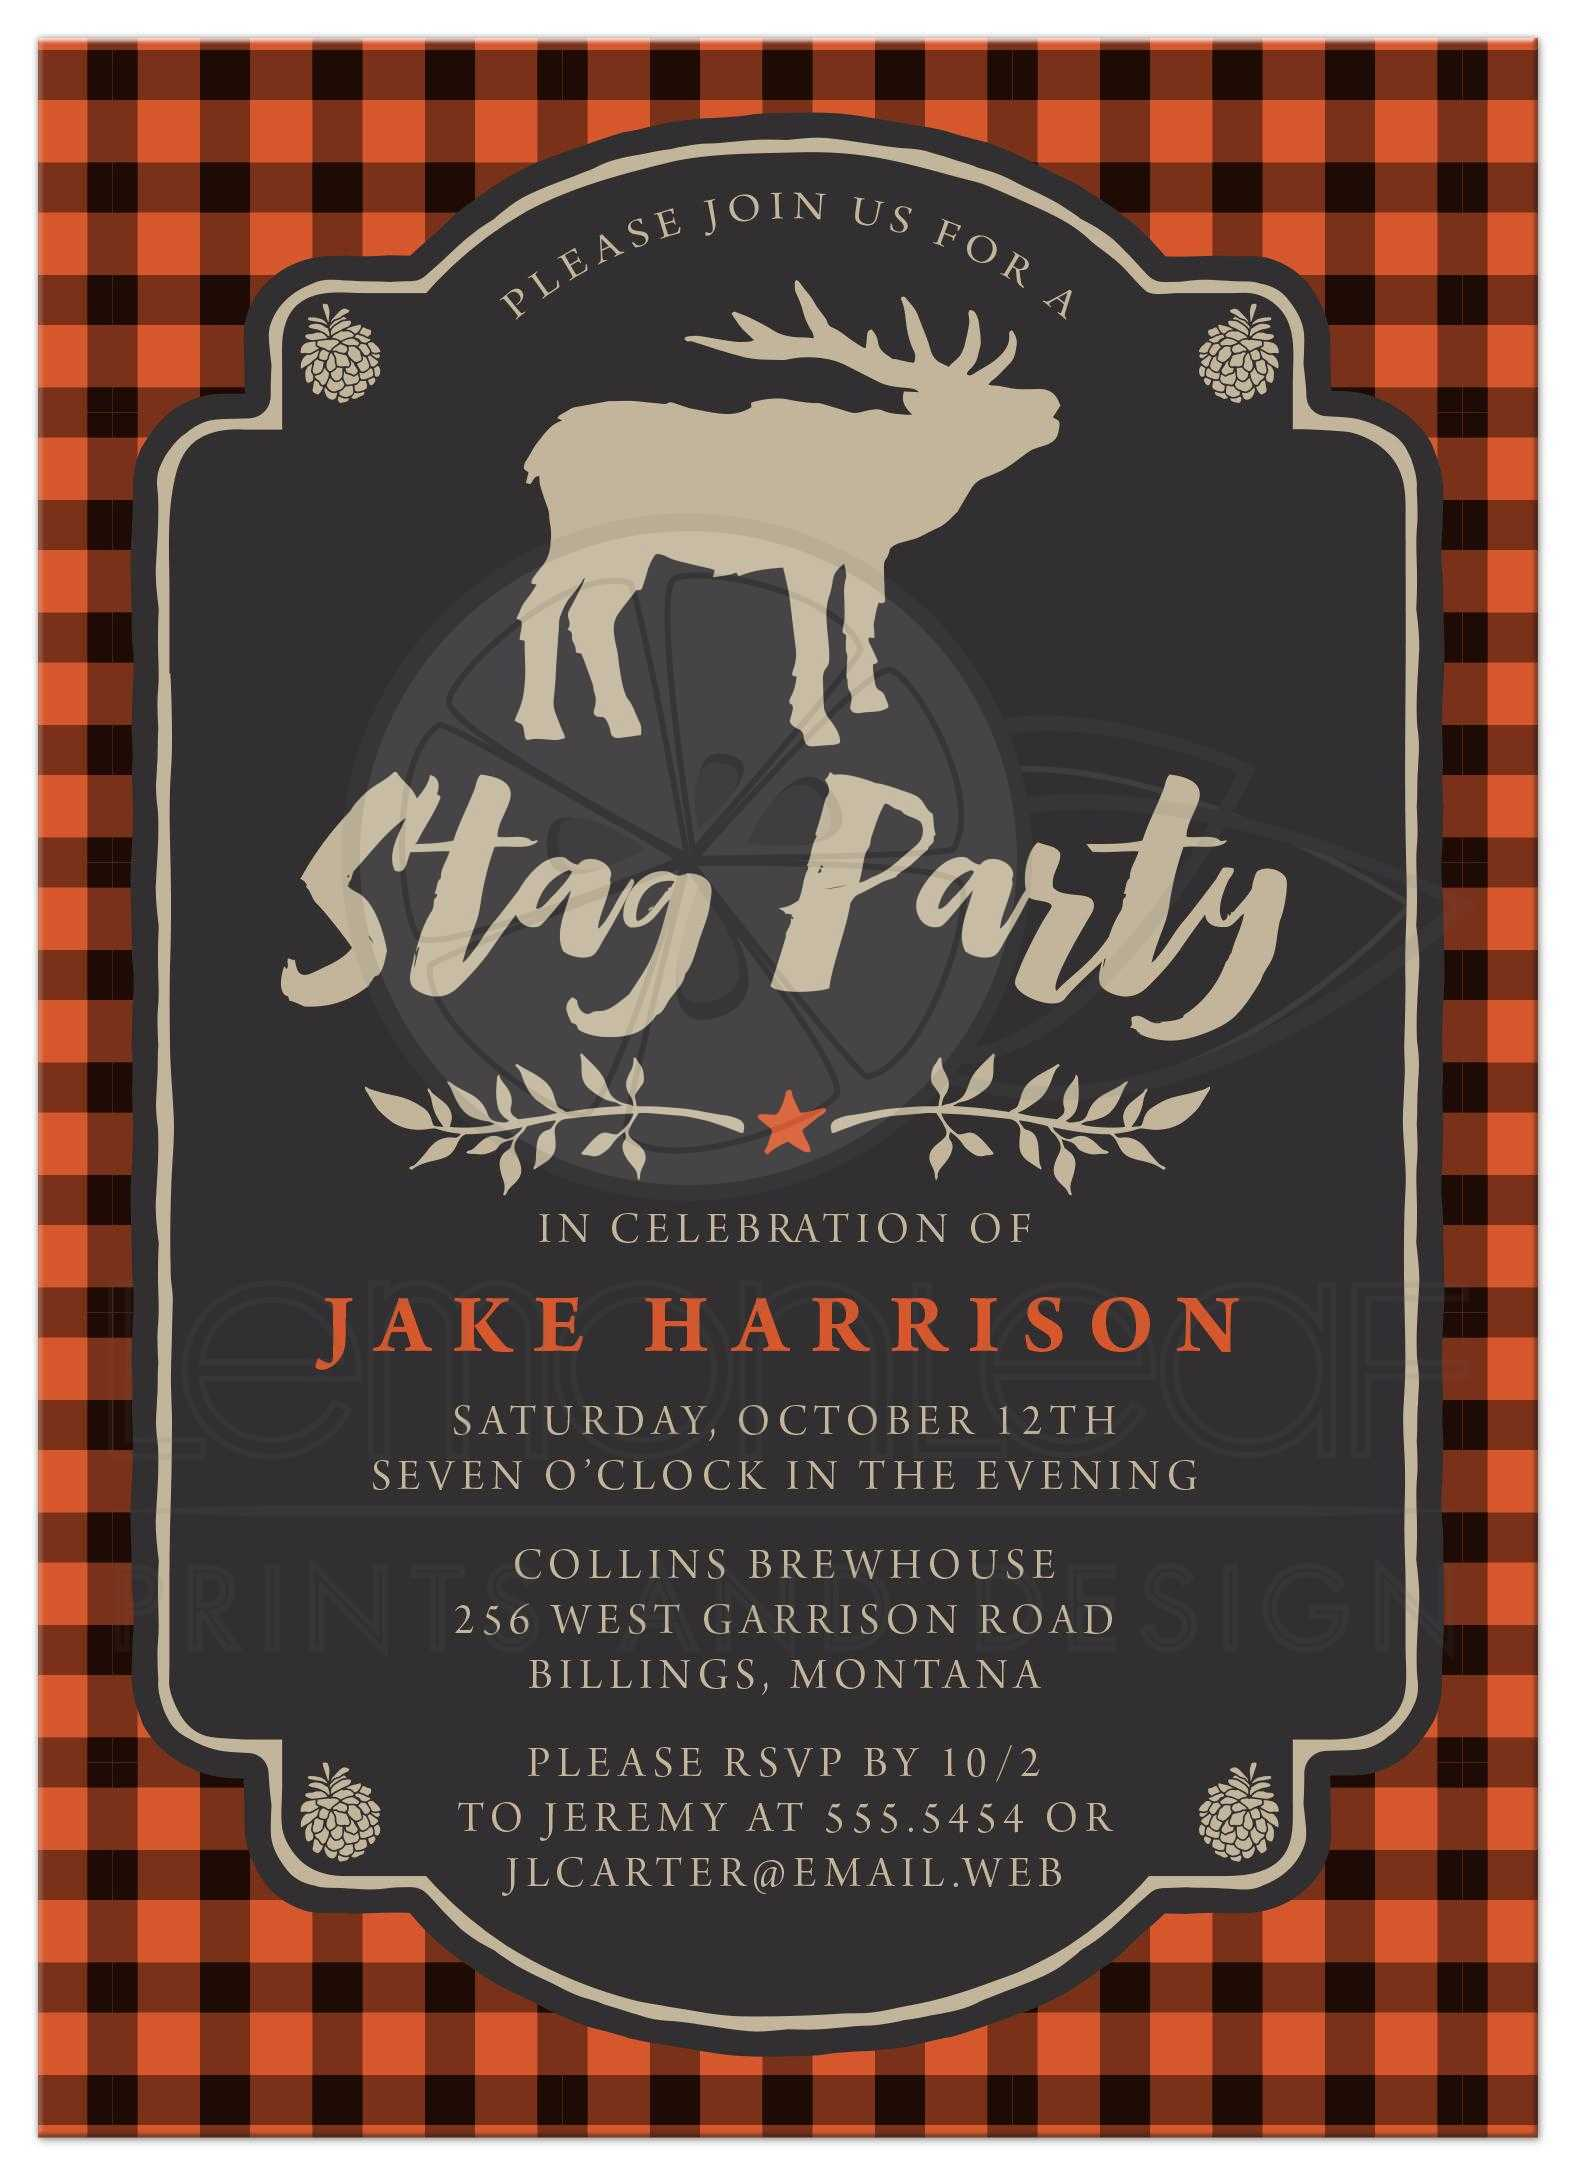 Bachelor Party Invitations - Rustic Orange & Black Plaid Stag Party